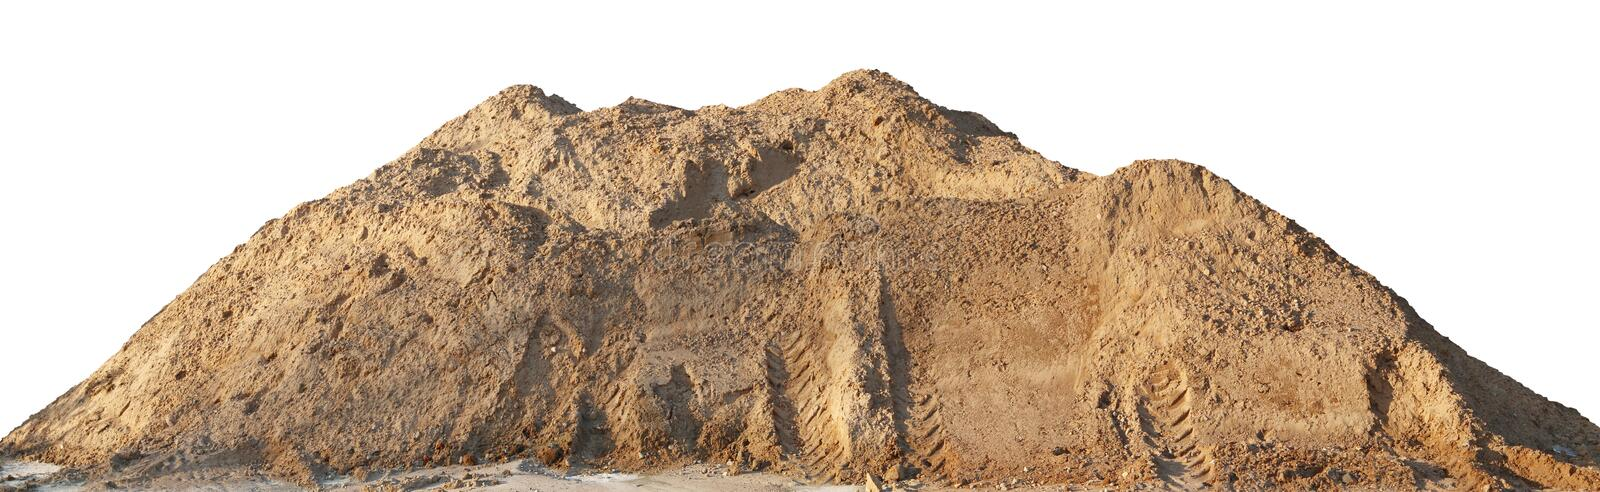 A large pile of construction sand with traces of tractor wheels royalty free stock photo